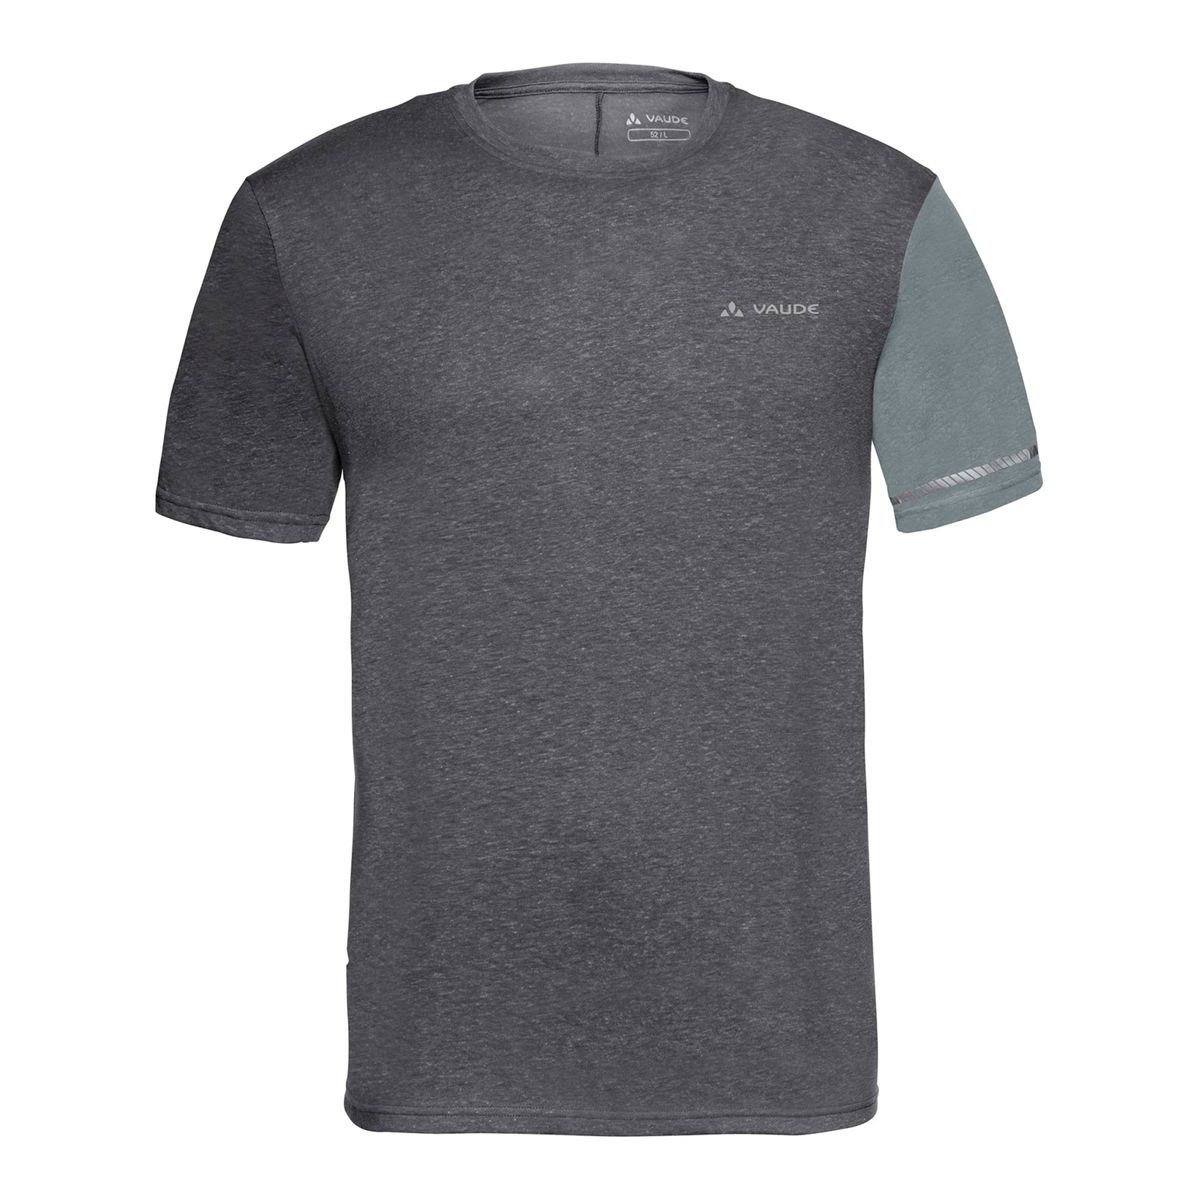 Men's Cevio t-shirt